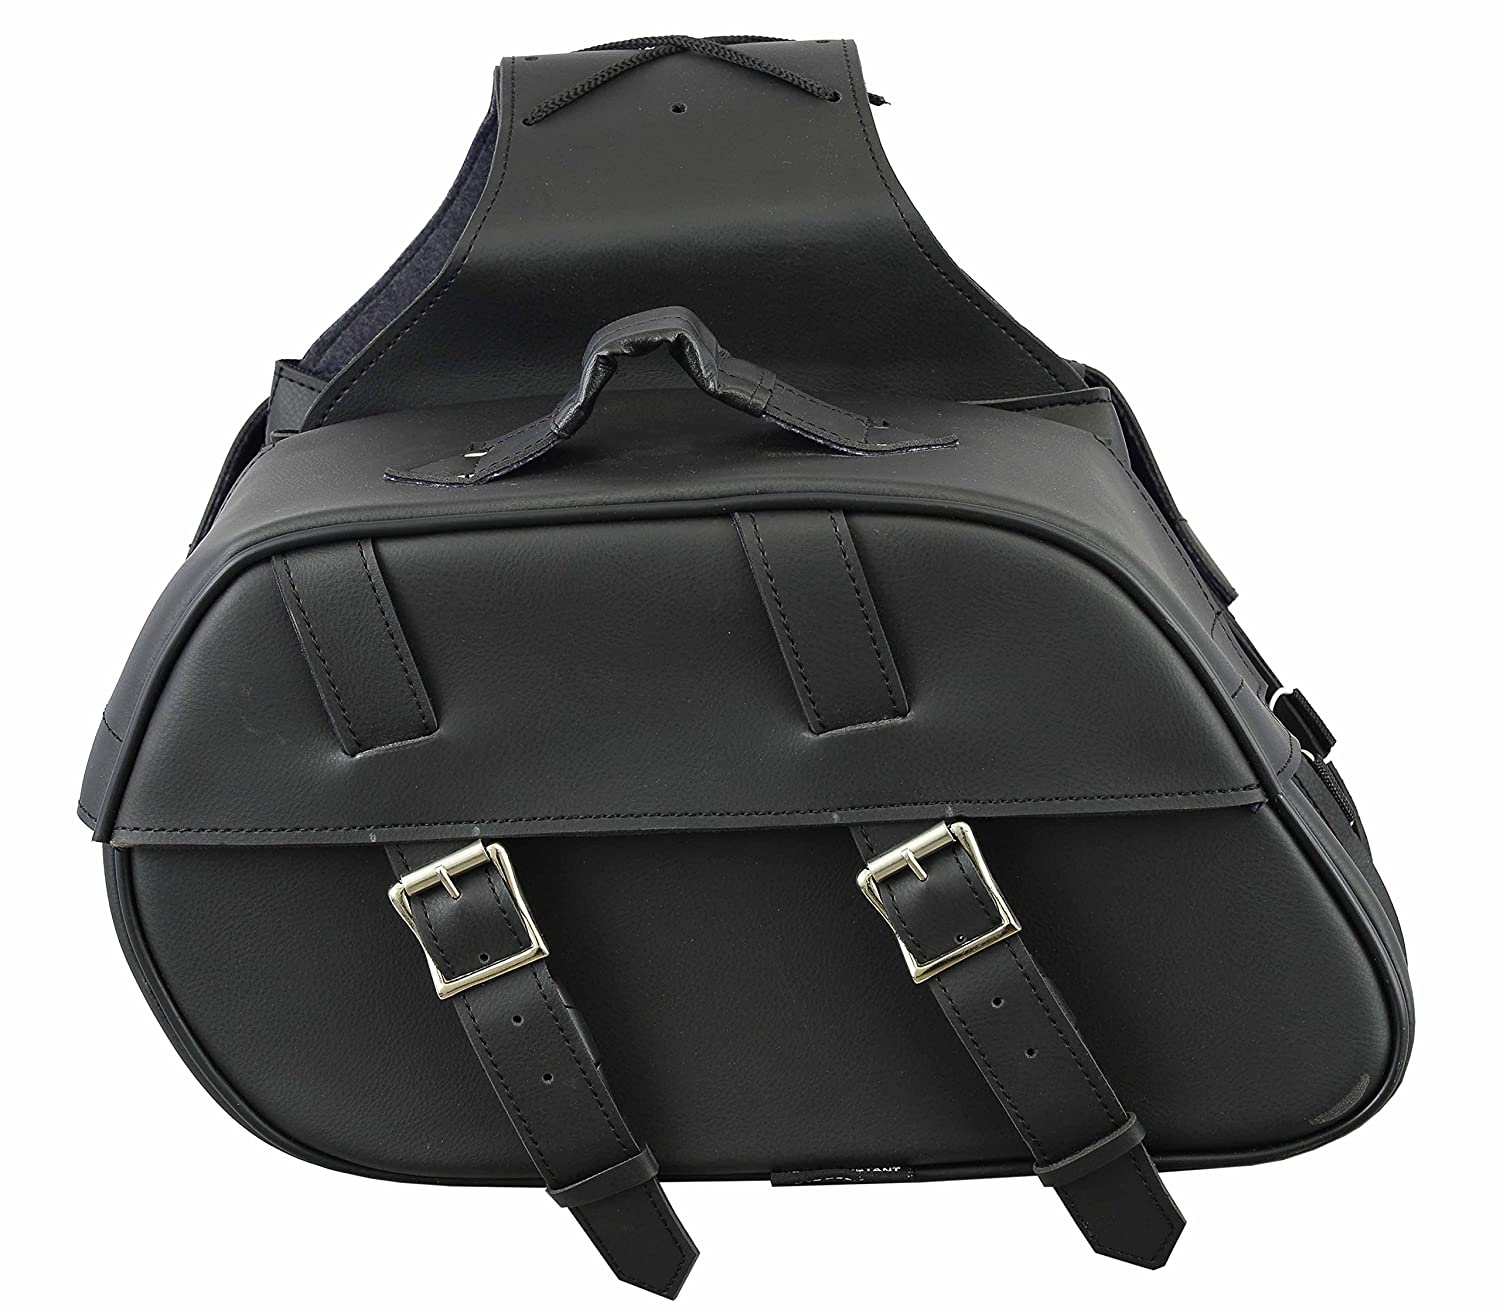 577 Genuine Leather Series - Profirst Waterproof Motorbike Saddle Bag Panniers Luggage Box Heavy Duty Sissy Bar Frilled Panniers Product Touring Cruisers Motorcycles - Full Black Pro First 577 Leather